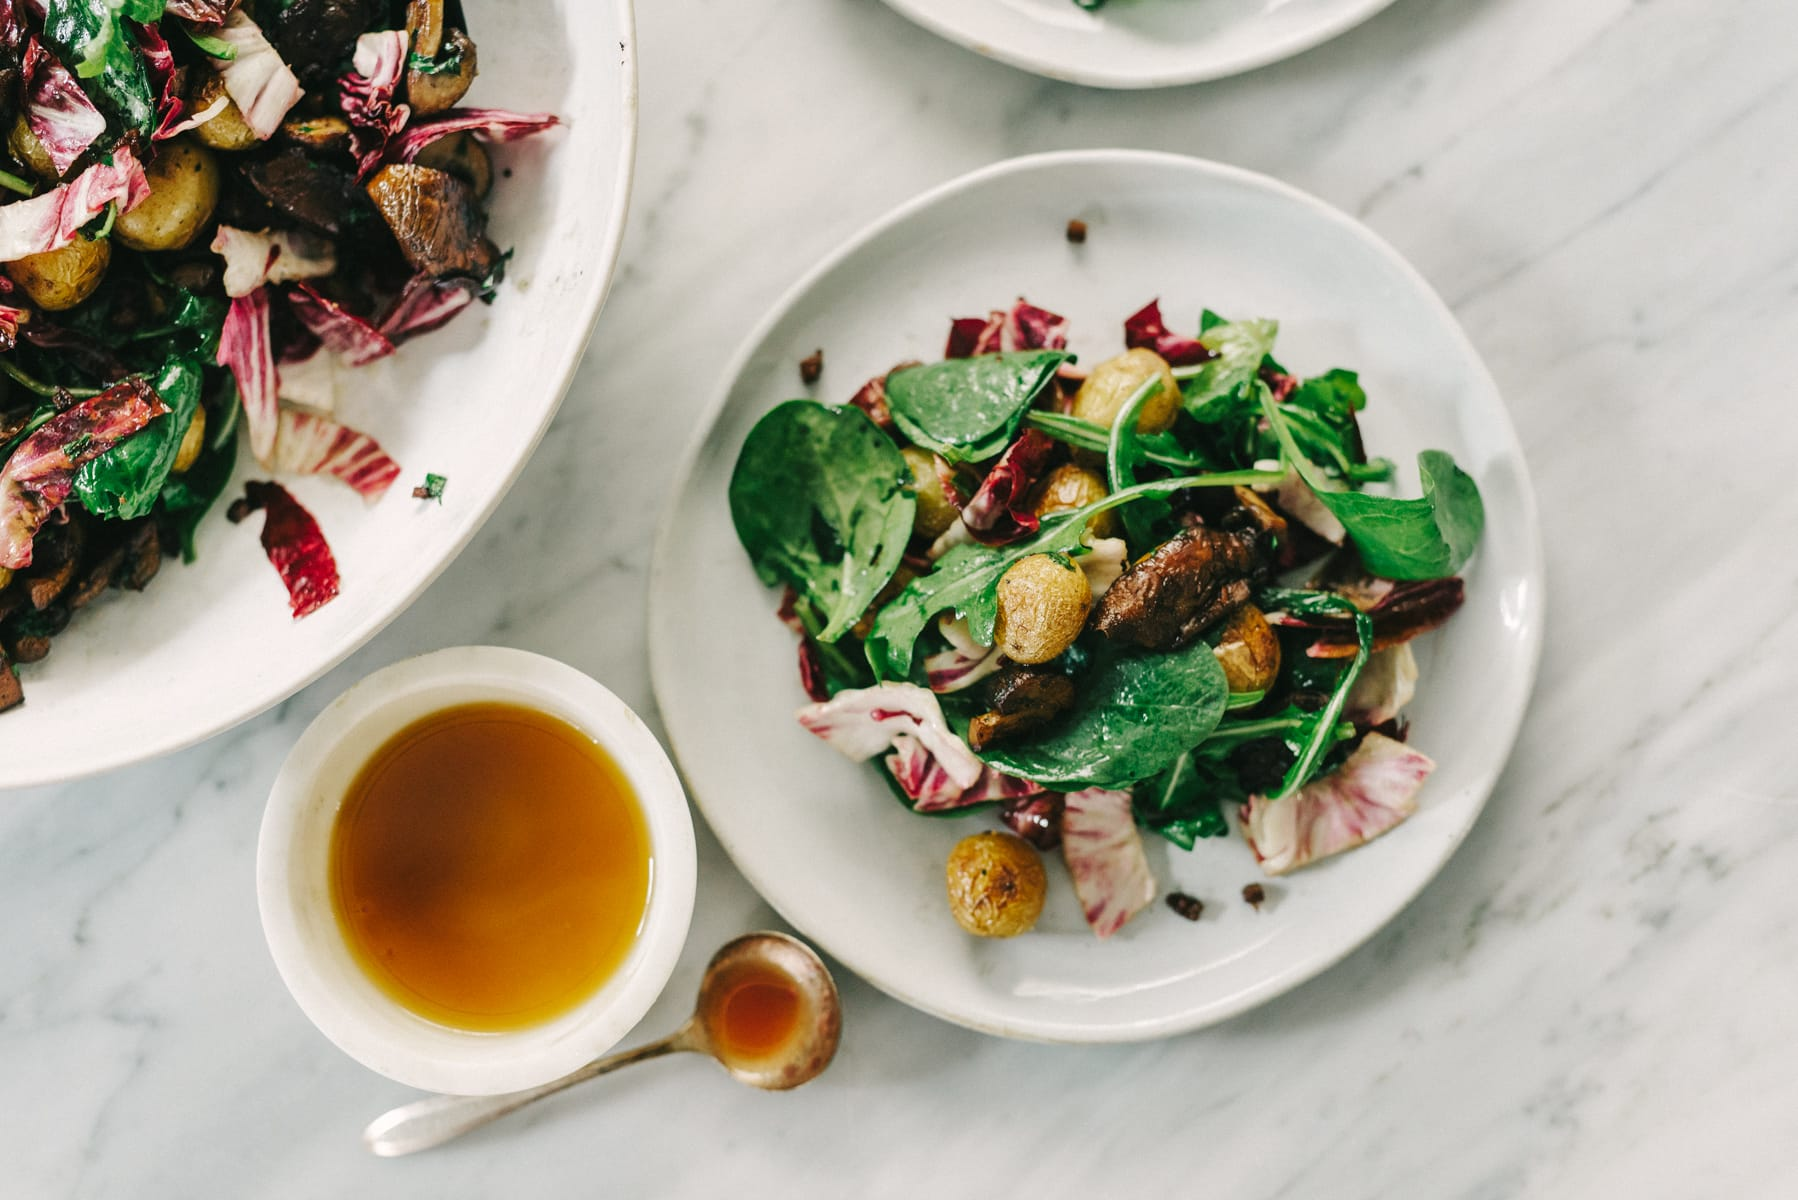 Warm Mushroom Salad with Potato and Wilted Greens | Our ...